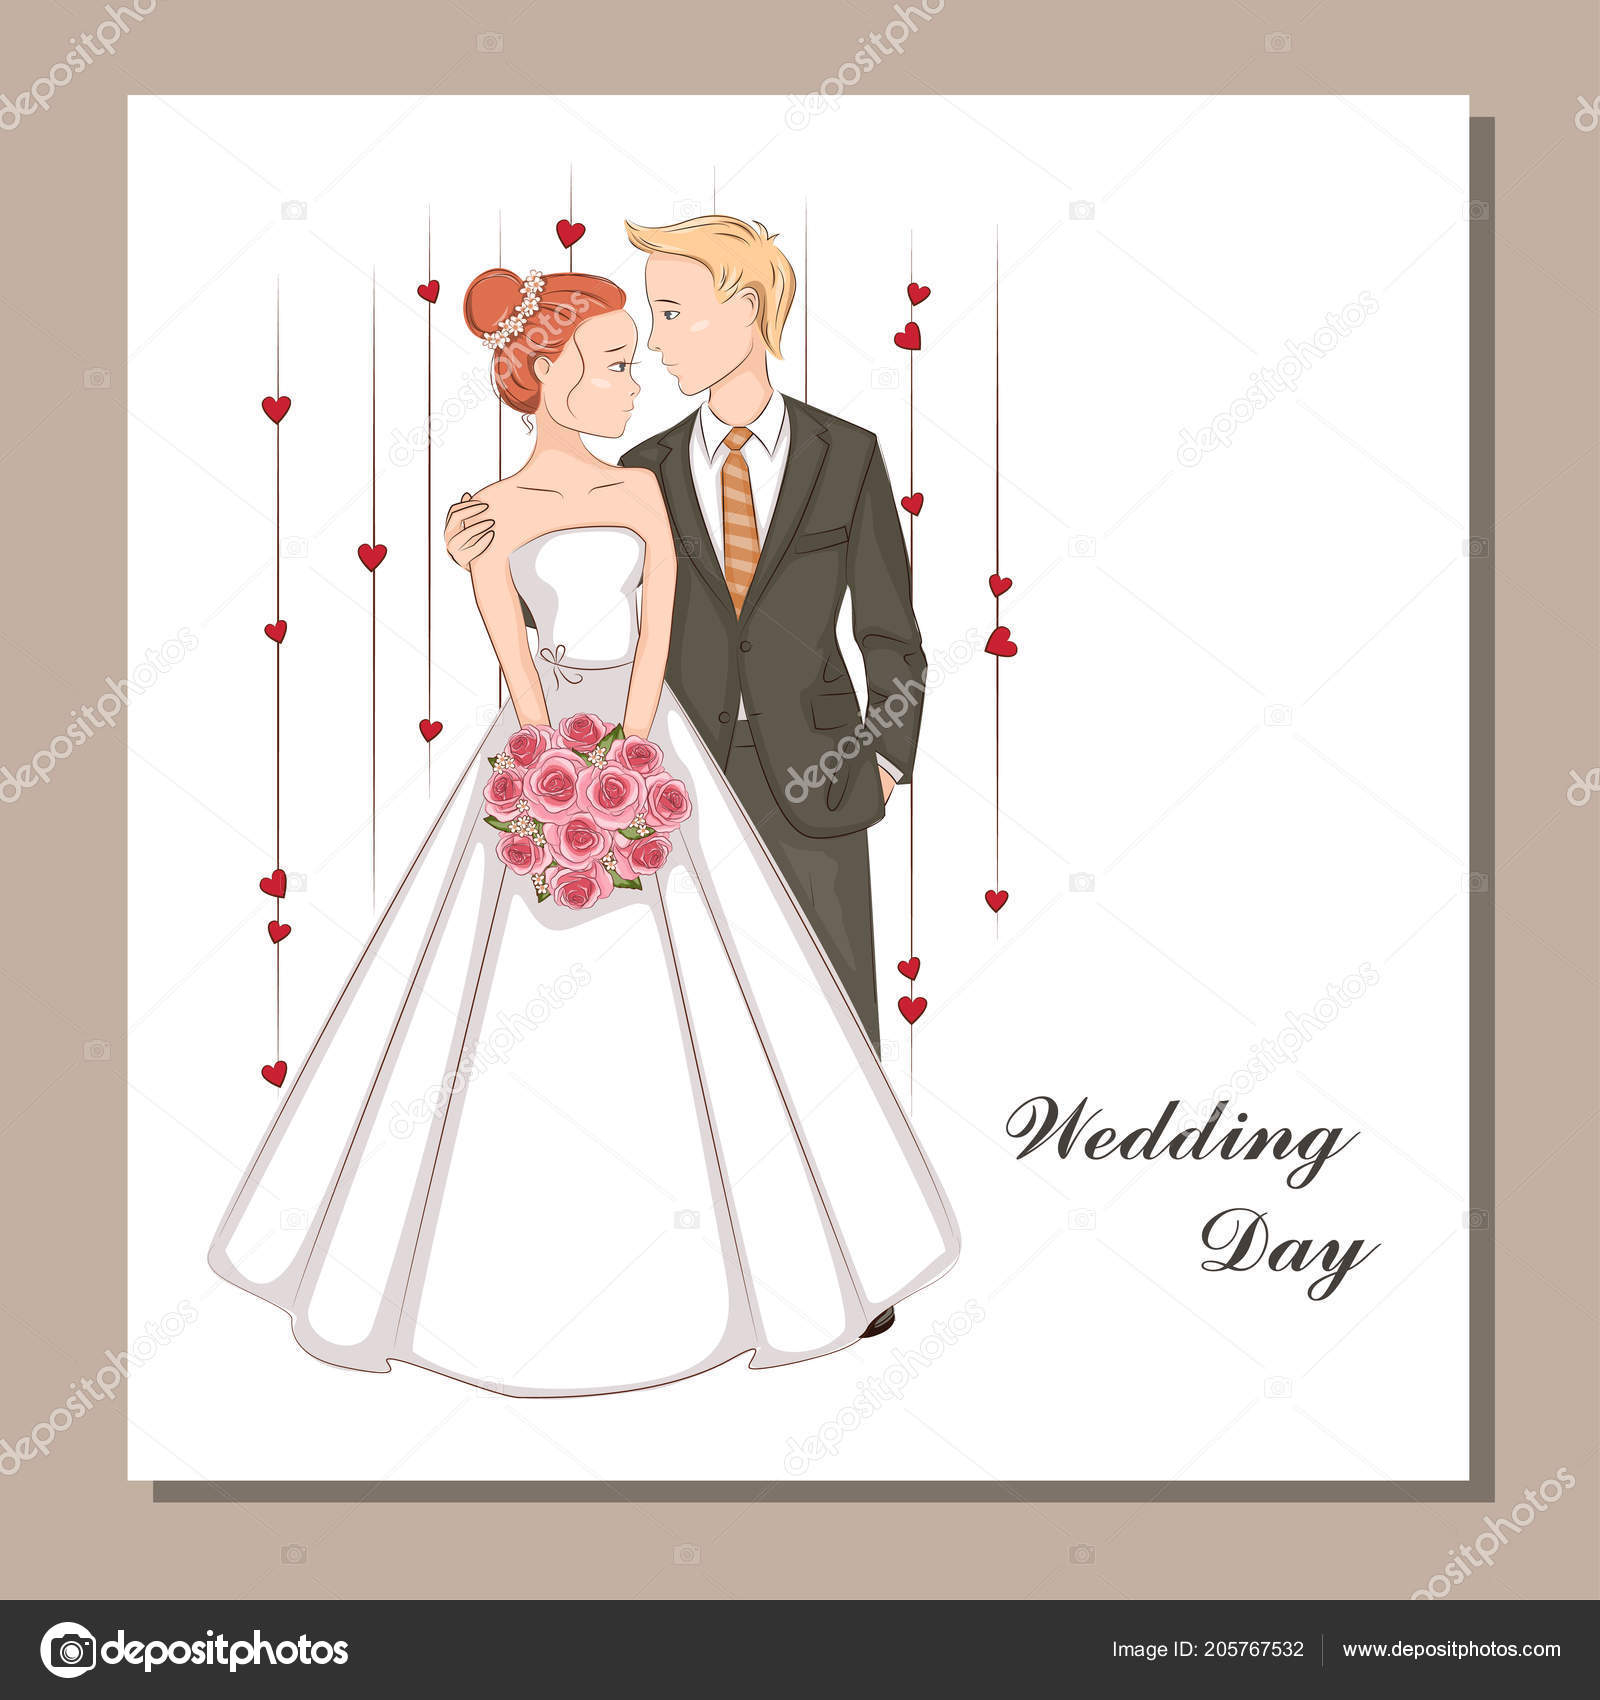 Wedding Invitation Bride Groom Stock Vector C Sivanova 205767532